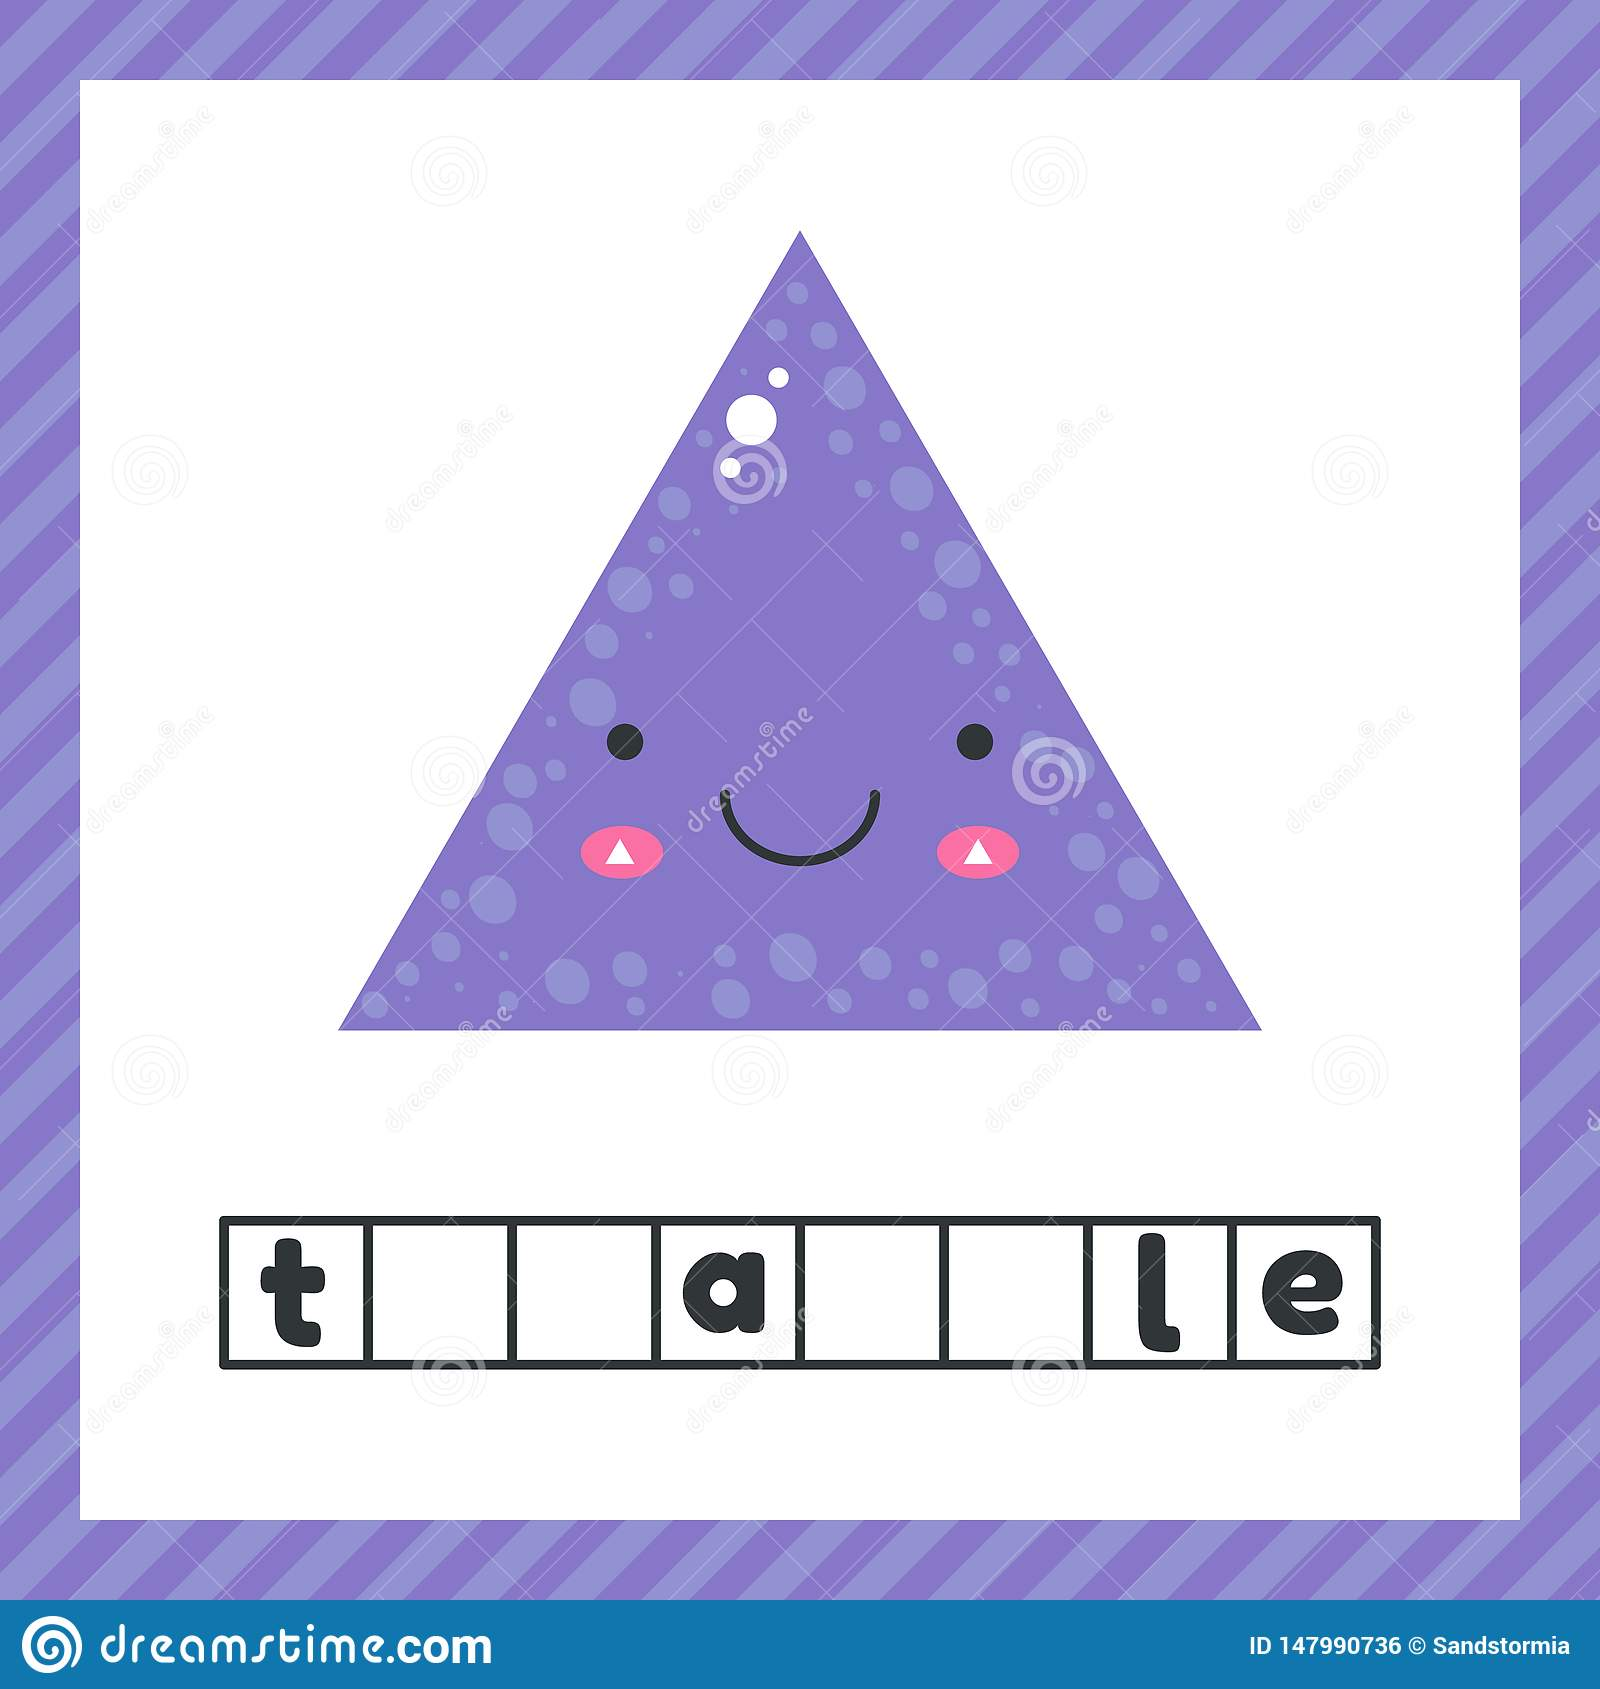 Cute Geometric Figures For Kids Violet Shape Triangle